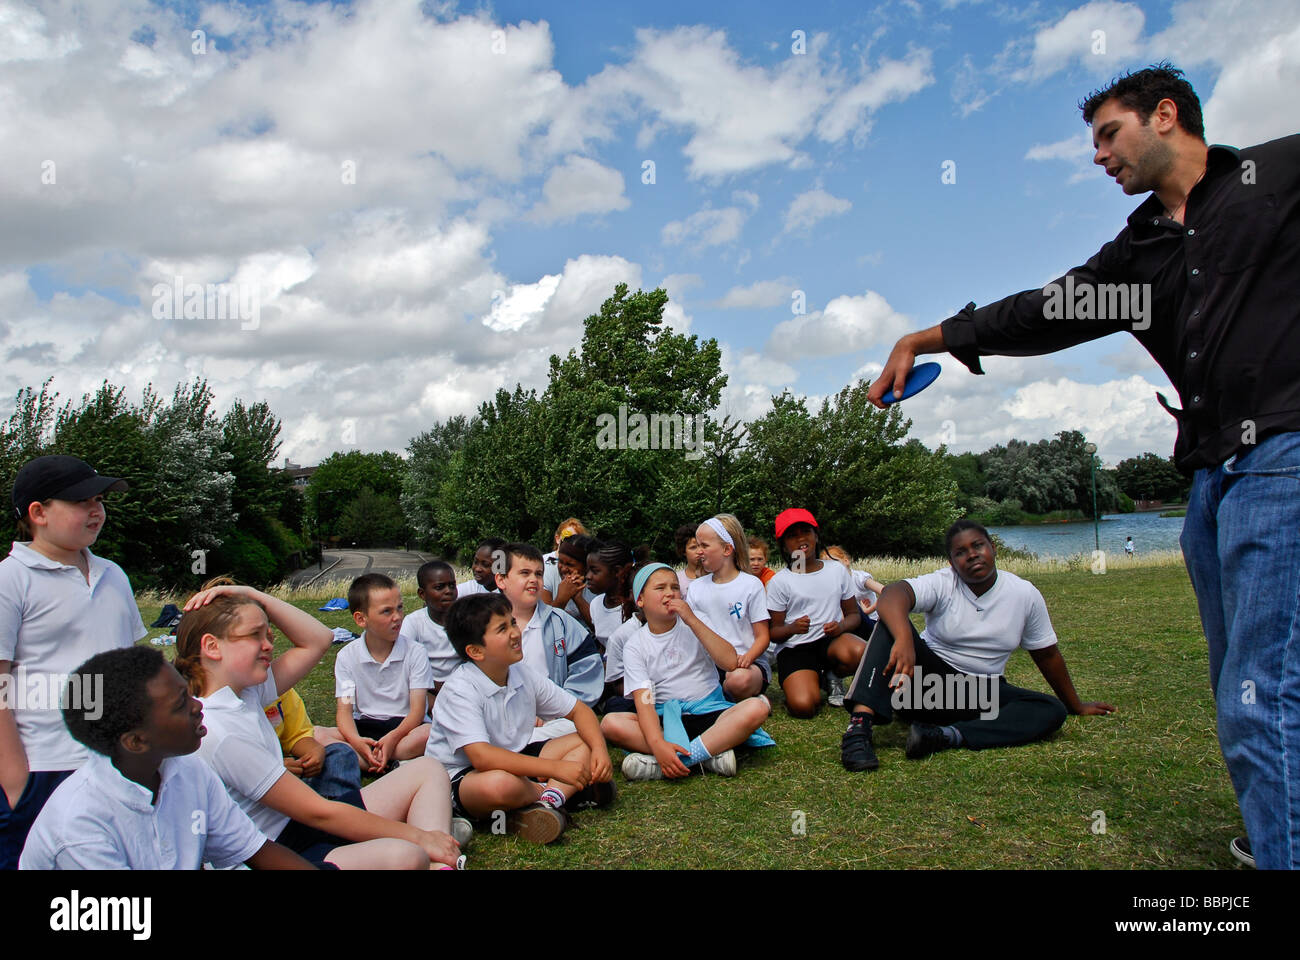 SPORTS TEACHER GIVING INSTRUCTION FOR THE CLASS / ANNUAL SCHOOL SPORTS DAY BURGES PARK 2009 - Stock Image